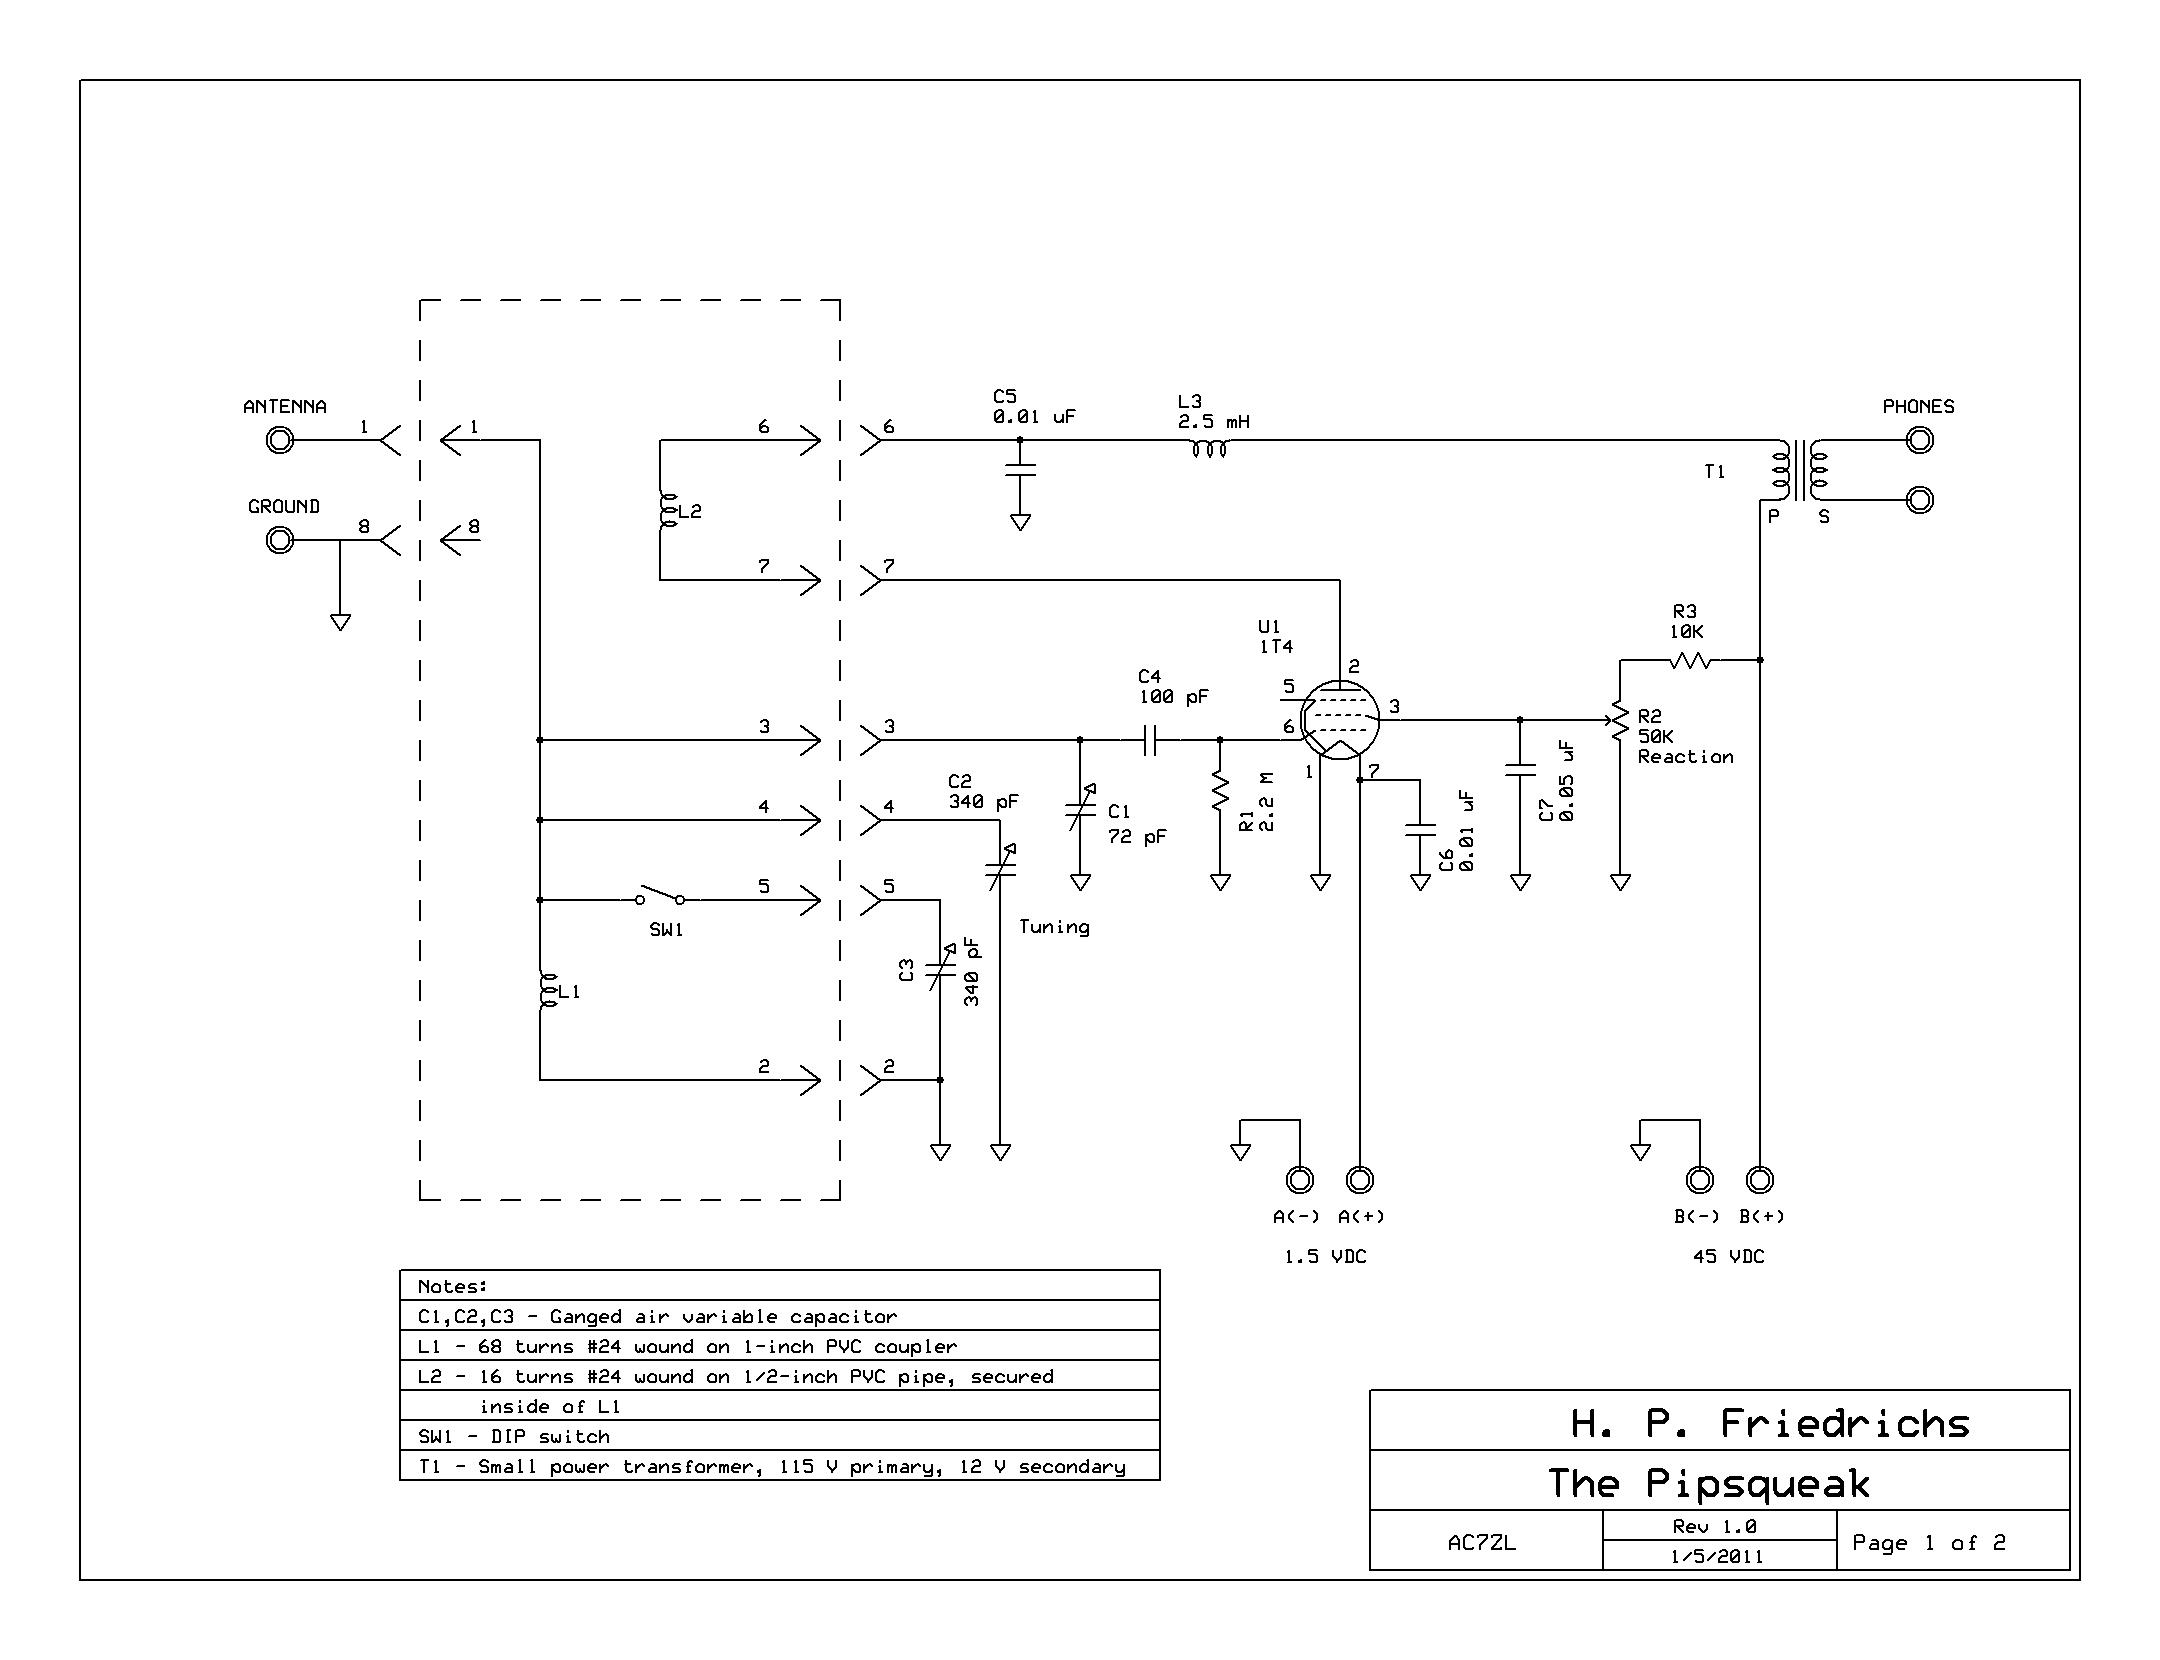 The Hp Friedrichs Ac7zl Homepage Antenna Circuit Diagram Pipsqueak Schematic Click On Image For Better Resolution